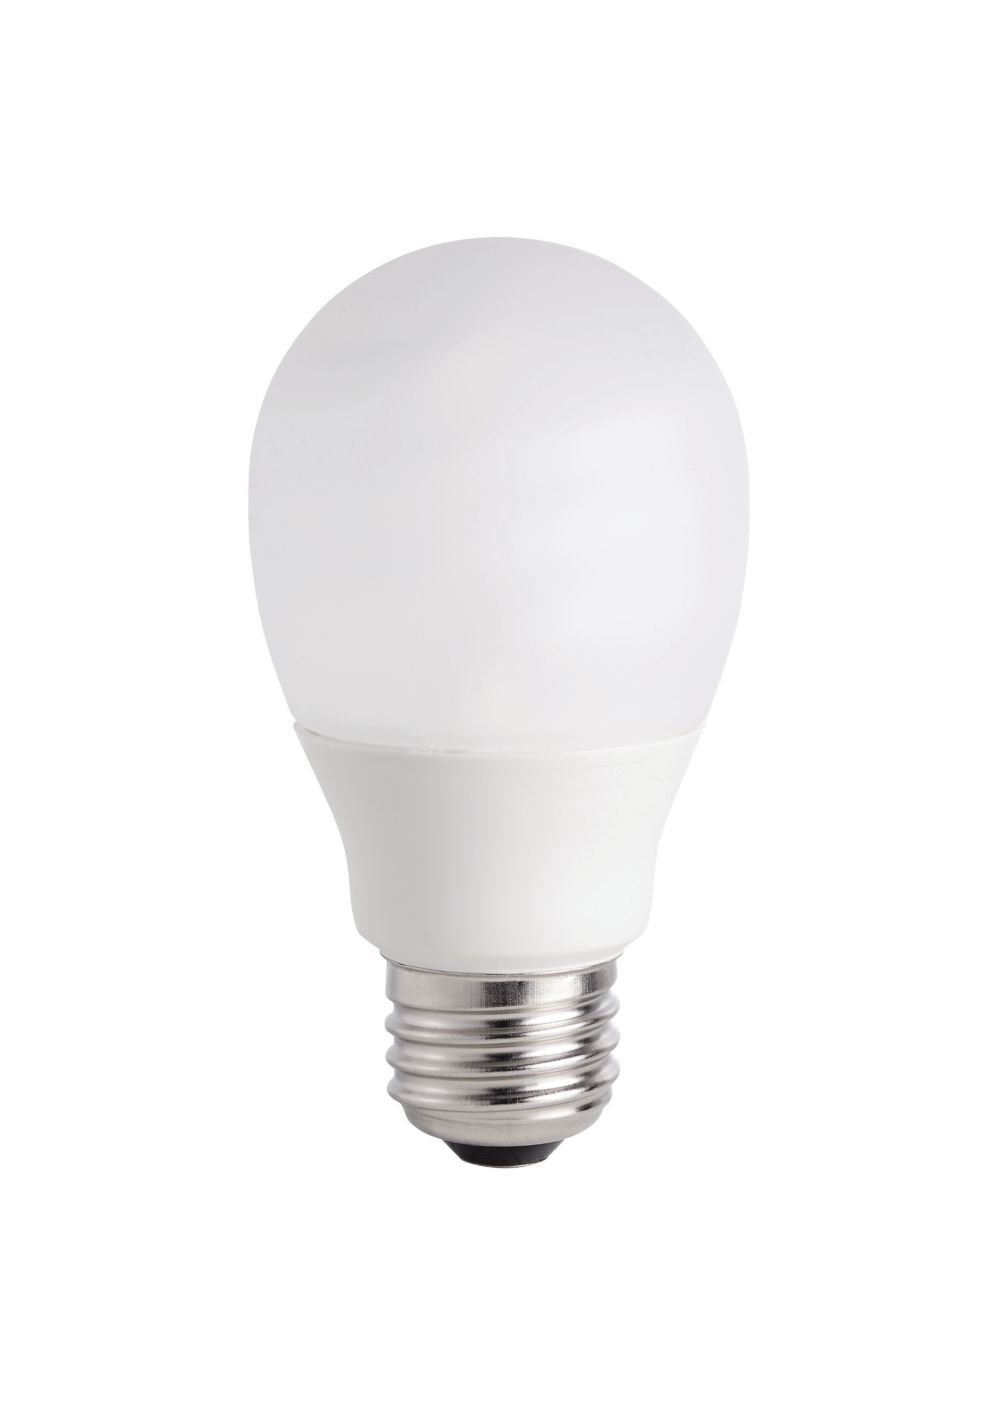 Philips 451773 14w 60 watt silicone covered a19 fan bulb philips 451773 14w 60 watt silicone covered a19 fan bulb candelabra base 2700k cfl light bulb 2 pack amazon arubaitofo Image collections